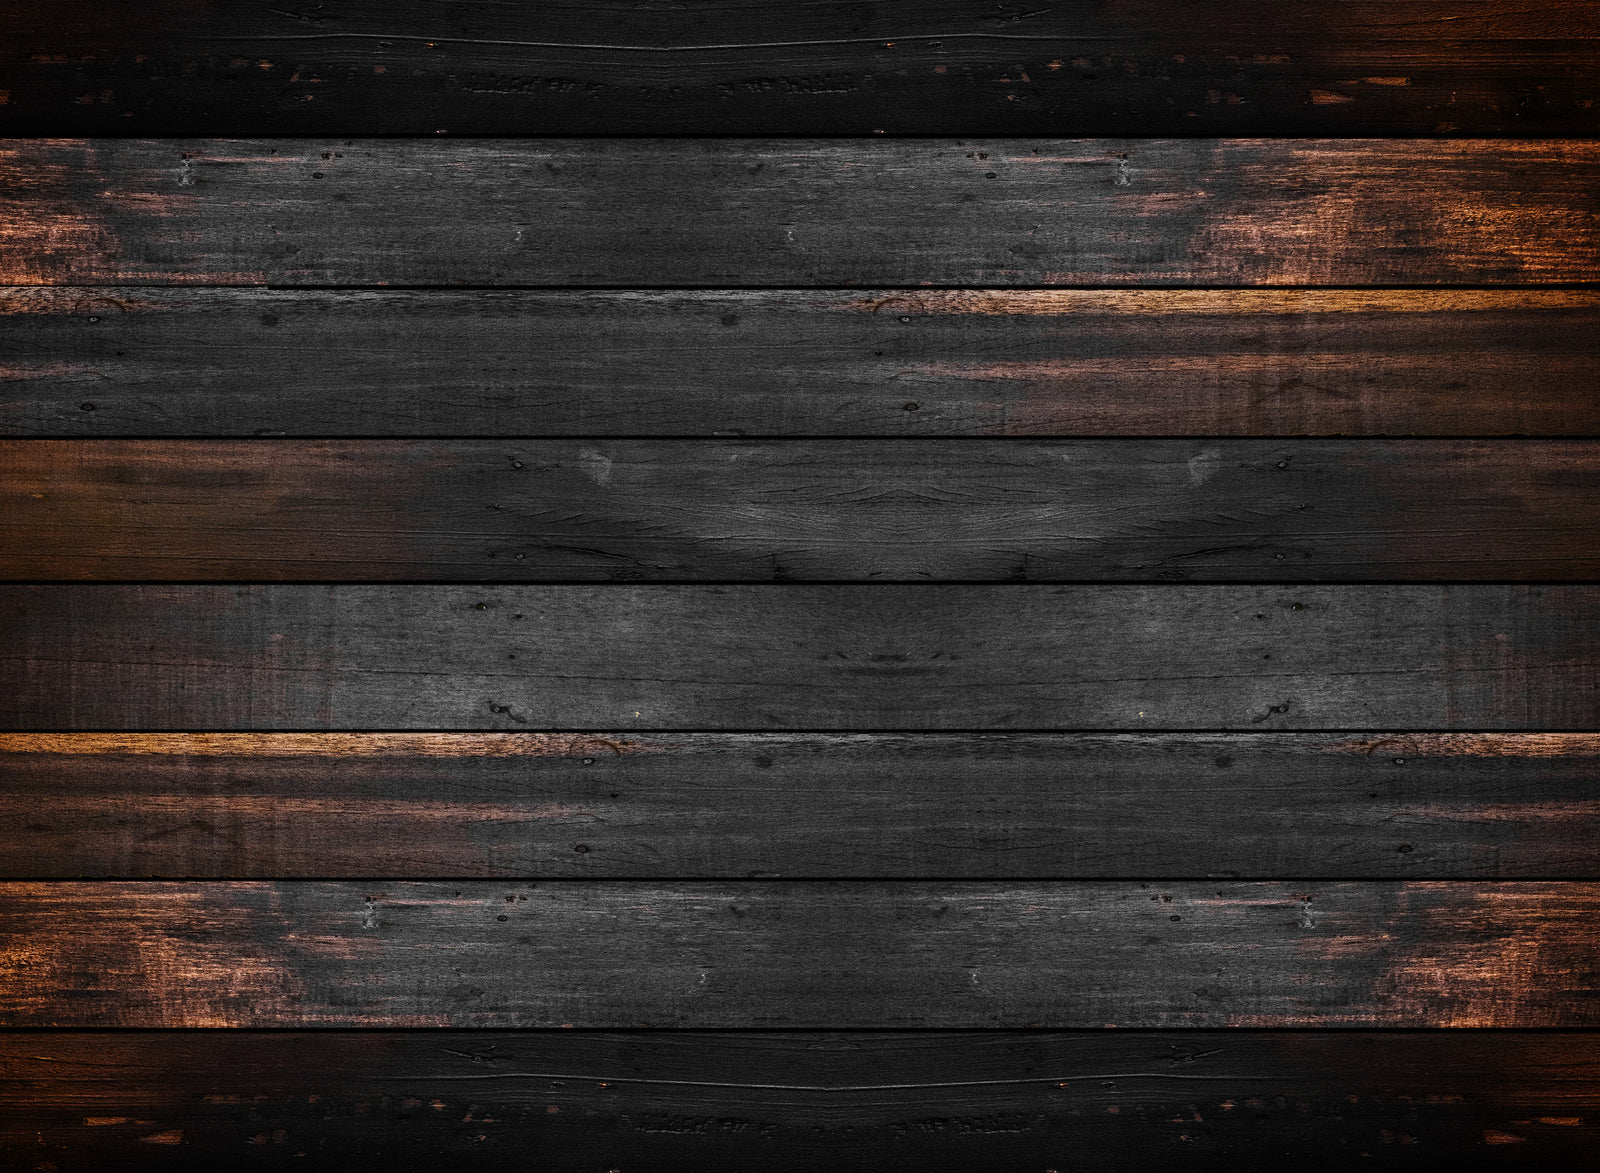 Background image of rustic, raw wood panels of exterior of escape room.